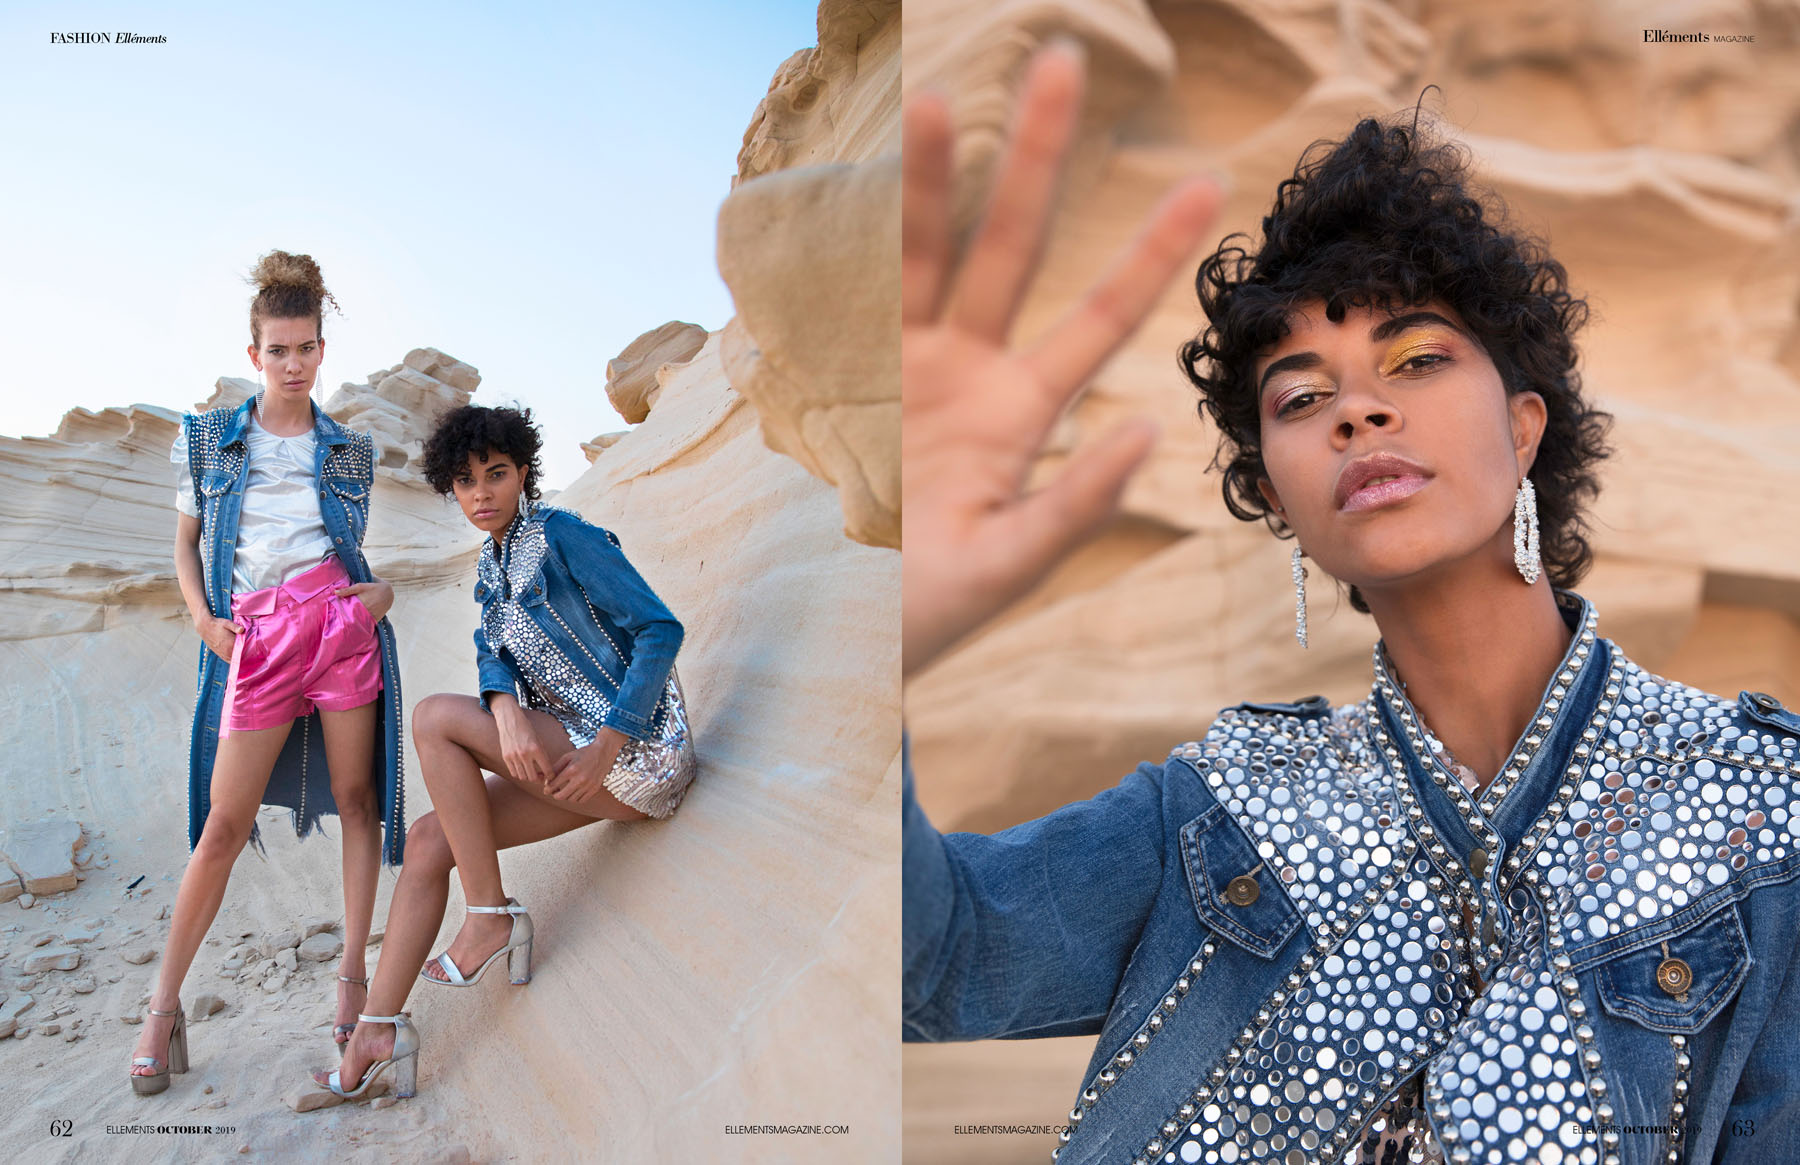 Publication of editorial fashion photoshoot of 2 female models in Fossil Dunes Abu Dhabi in Ellements Magazine by fashion photographer Dubai